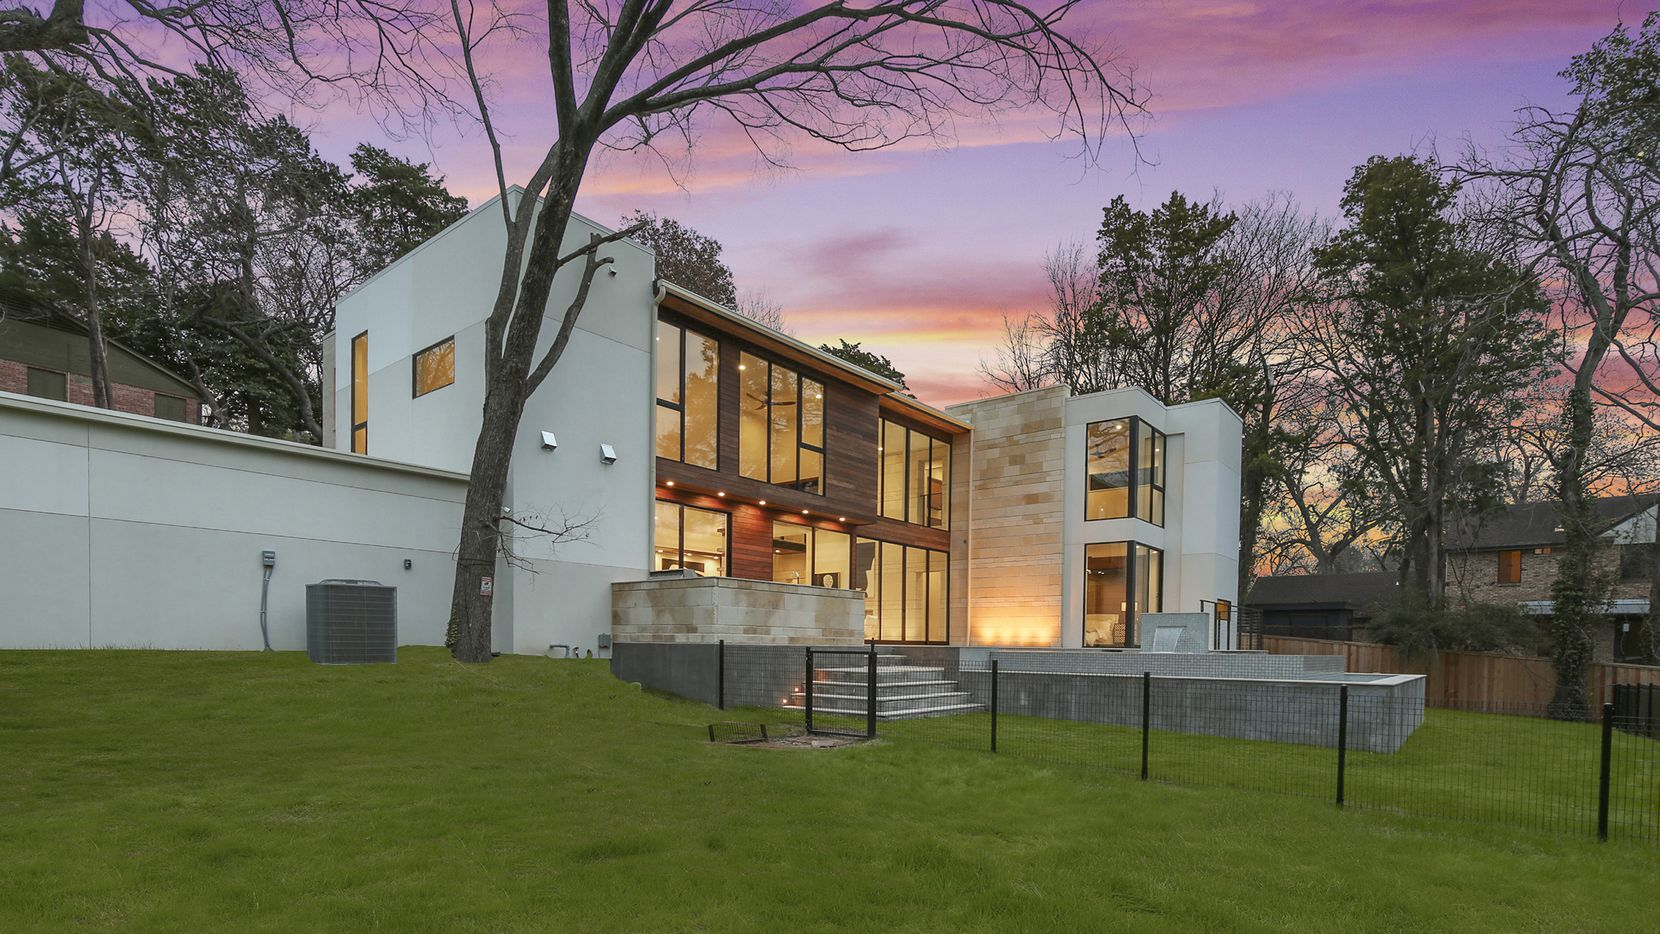 The Hewitt Habgood Realty Group represents this new-construction home at 650 W. Colorado Blvd. in Kessler Park. It is priced at $1,795,000.